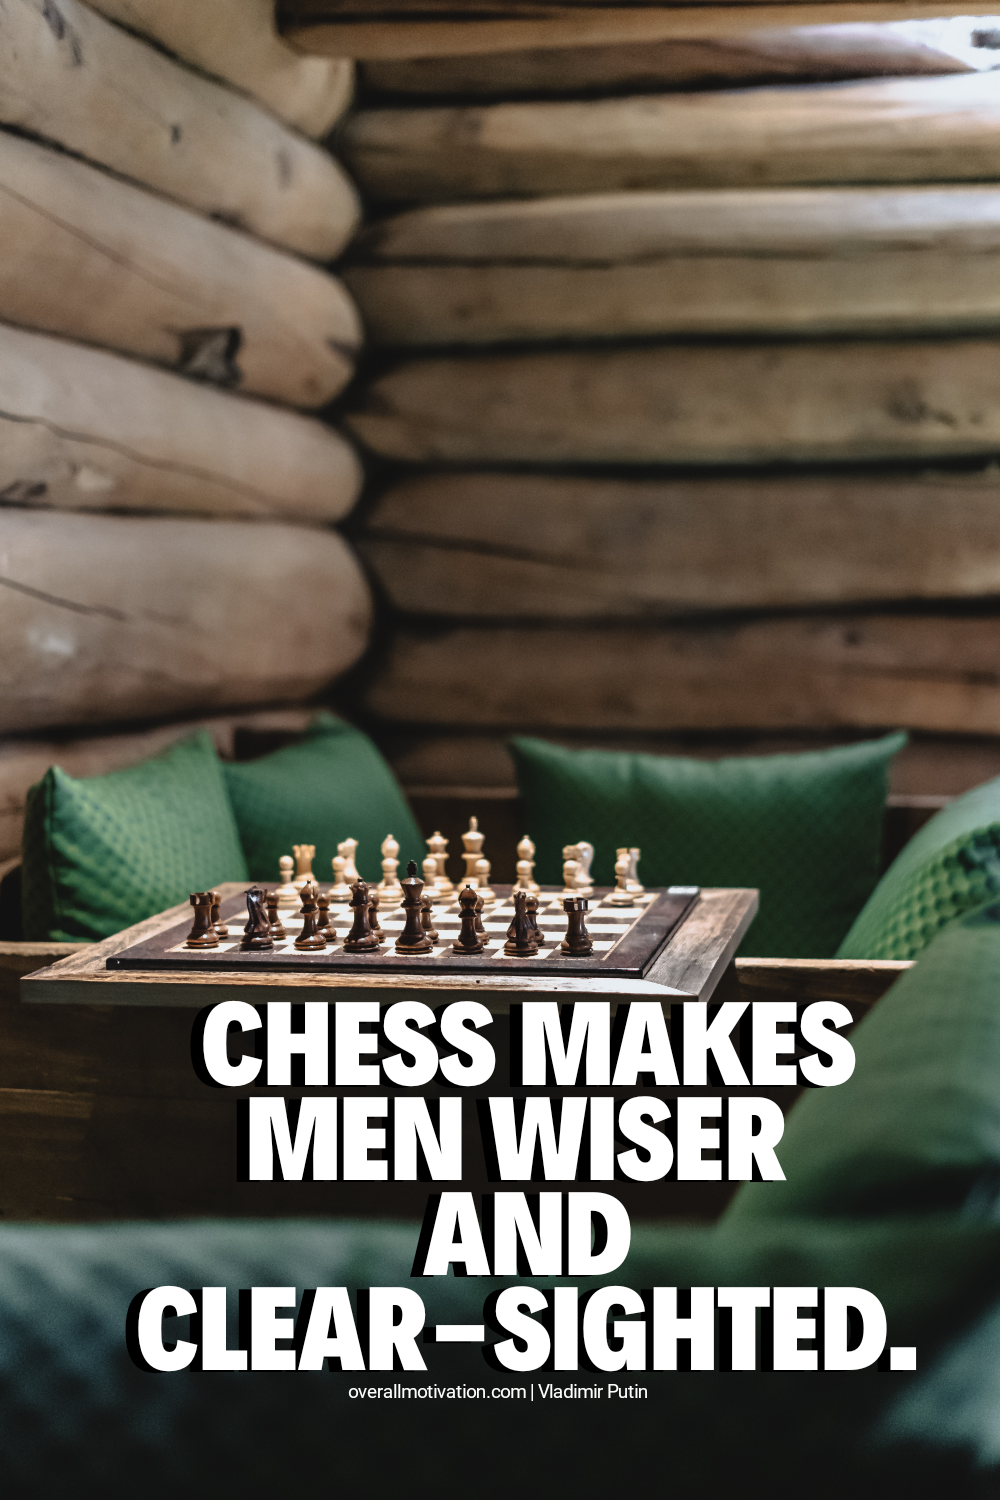 chess makes